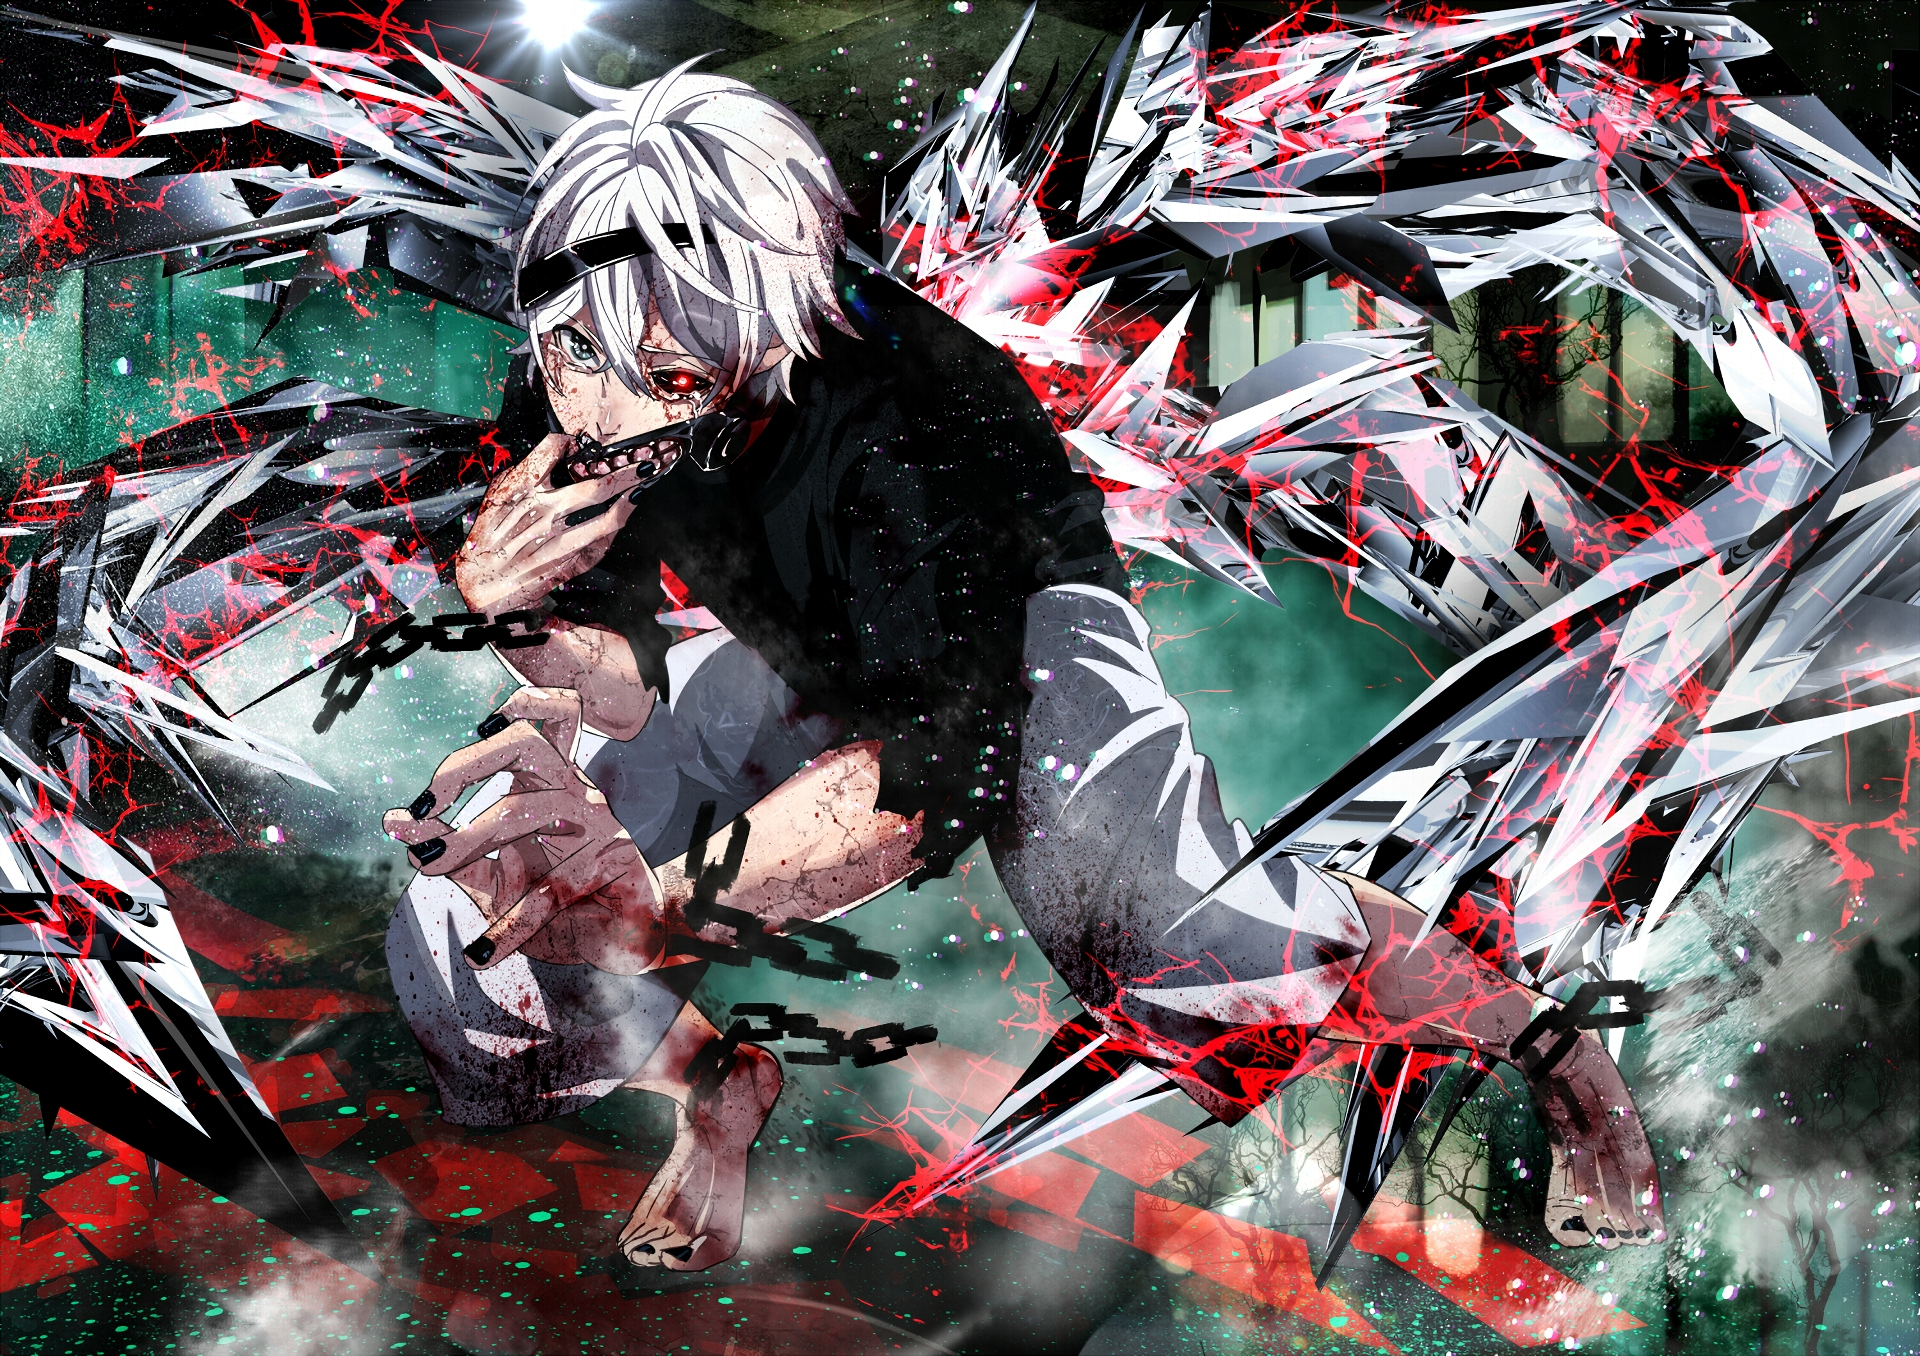 Scene From Tokyo Ghoul Anime Wallpaper Full Hd Id4030